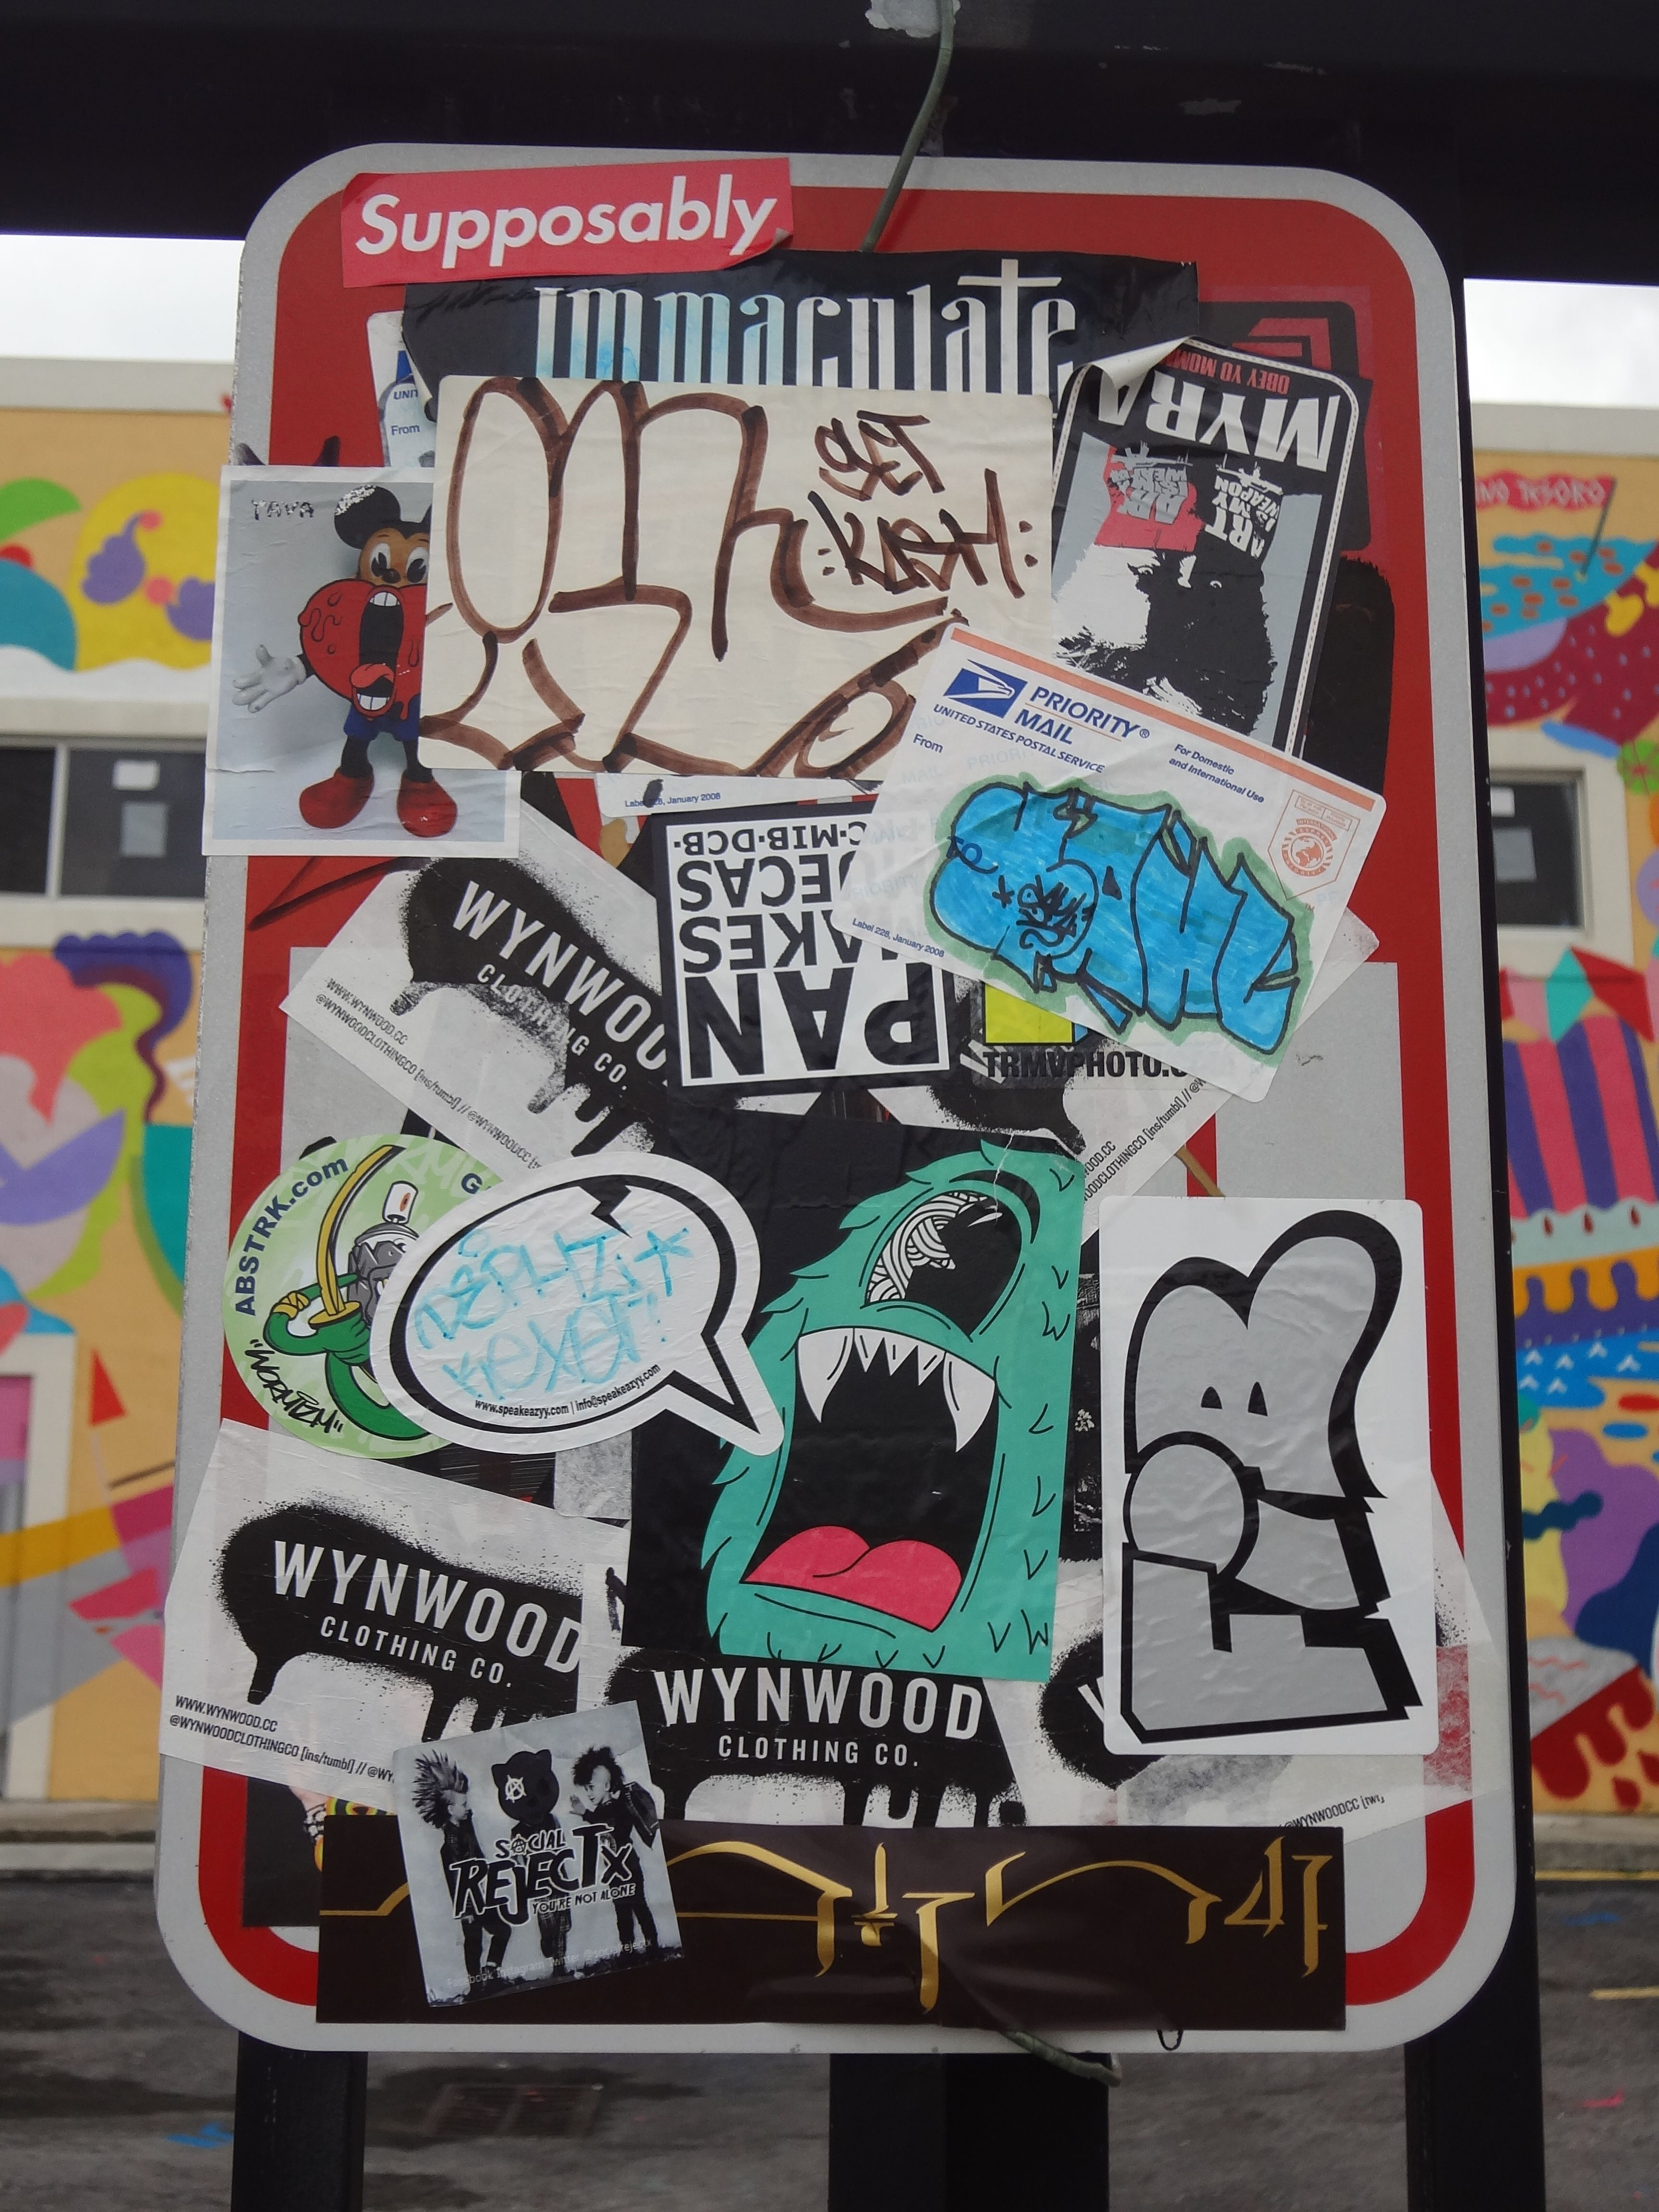 Sticker bombed street sign outside a shoe warehouse in